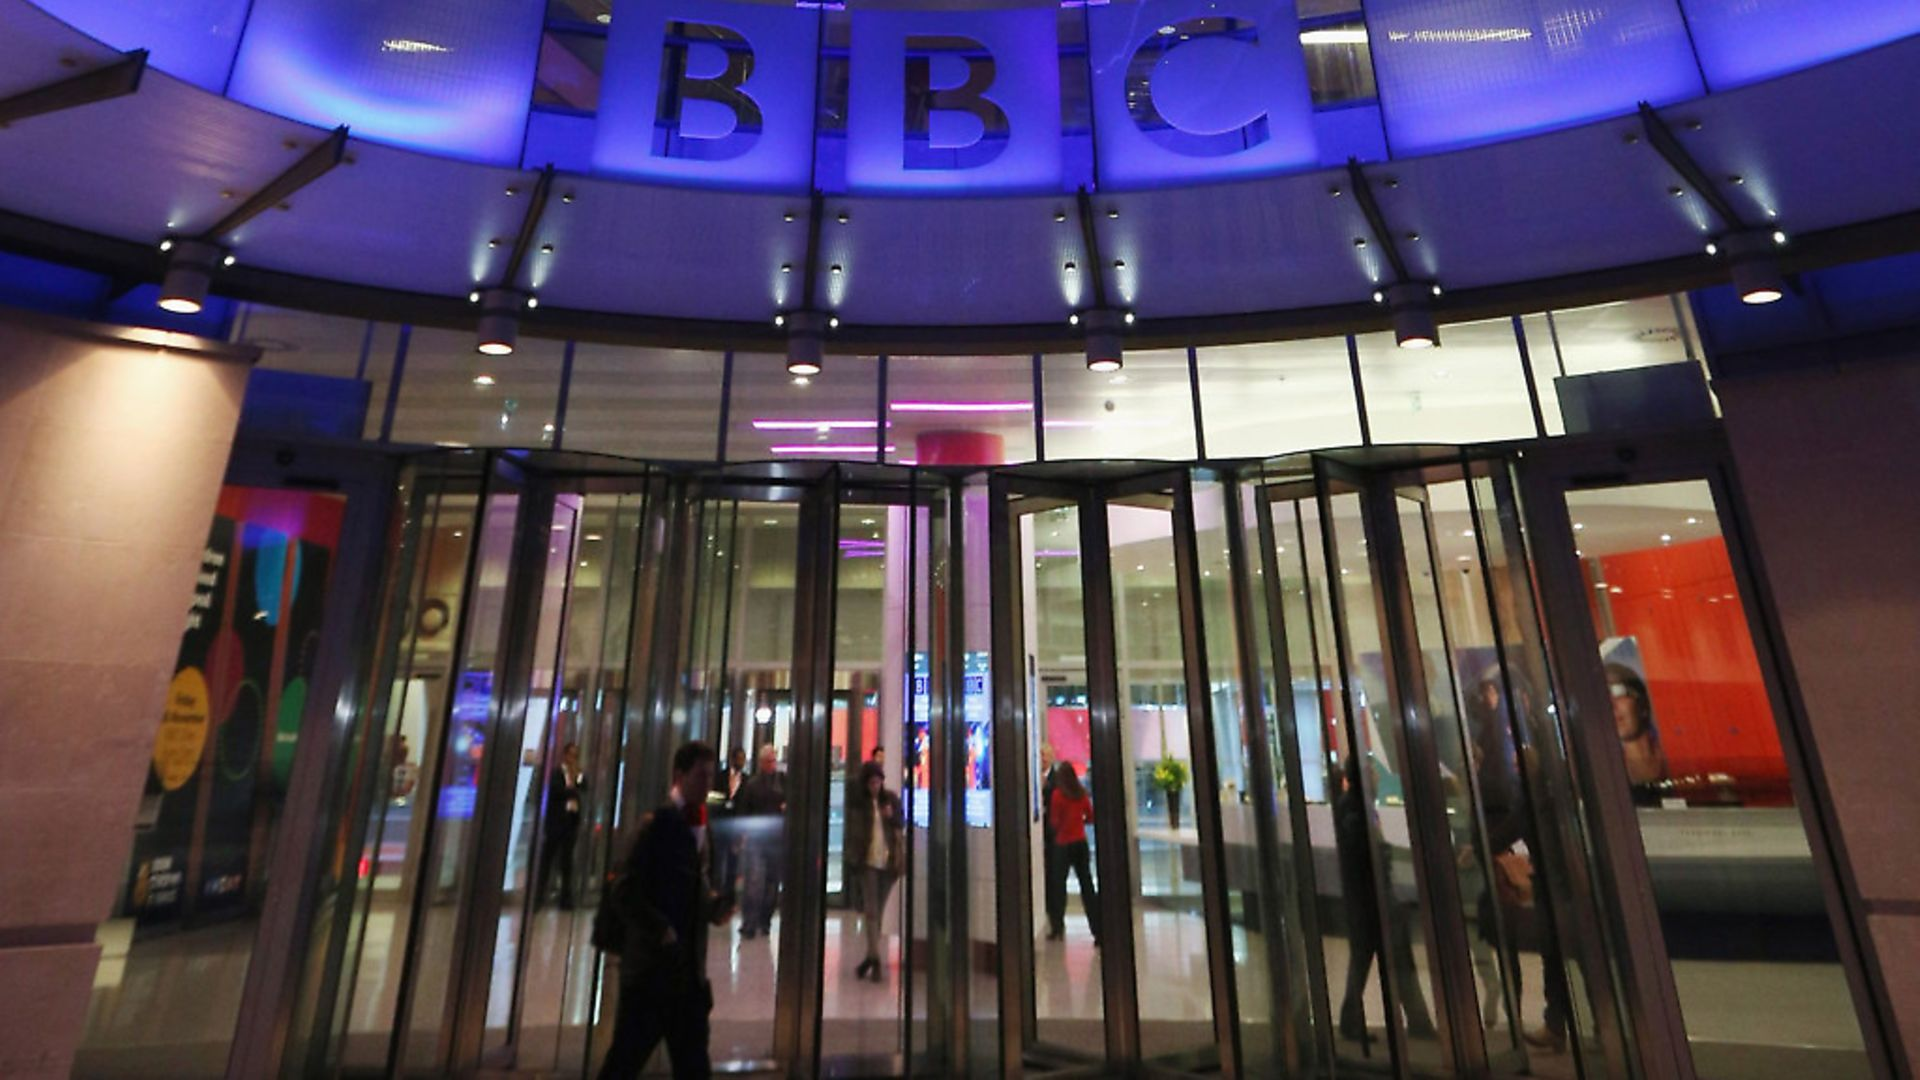 LONDON, ENGLAND - NOVEMBER 13:  The BBC headquarters at New Broadcasting House is illuminated at night on November 13, 2012 in London, England. Tim Davie has been appointed the acting Director General of the BBC following the resignation of George Entwistle after the broadcasting of an episode of the current affairs programme 'Newsnight' on child abuse allegations which contained errors.  (Photo by Oli Scarff/Getty Images) - Credit: Getty Images